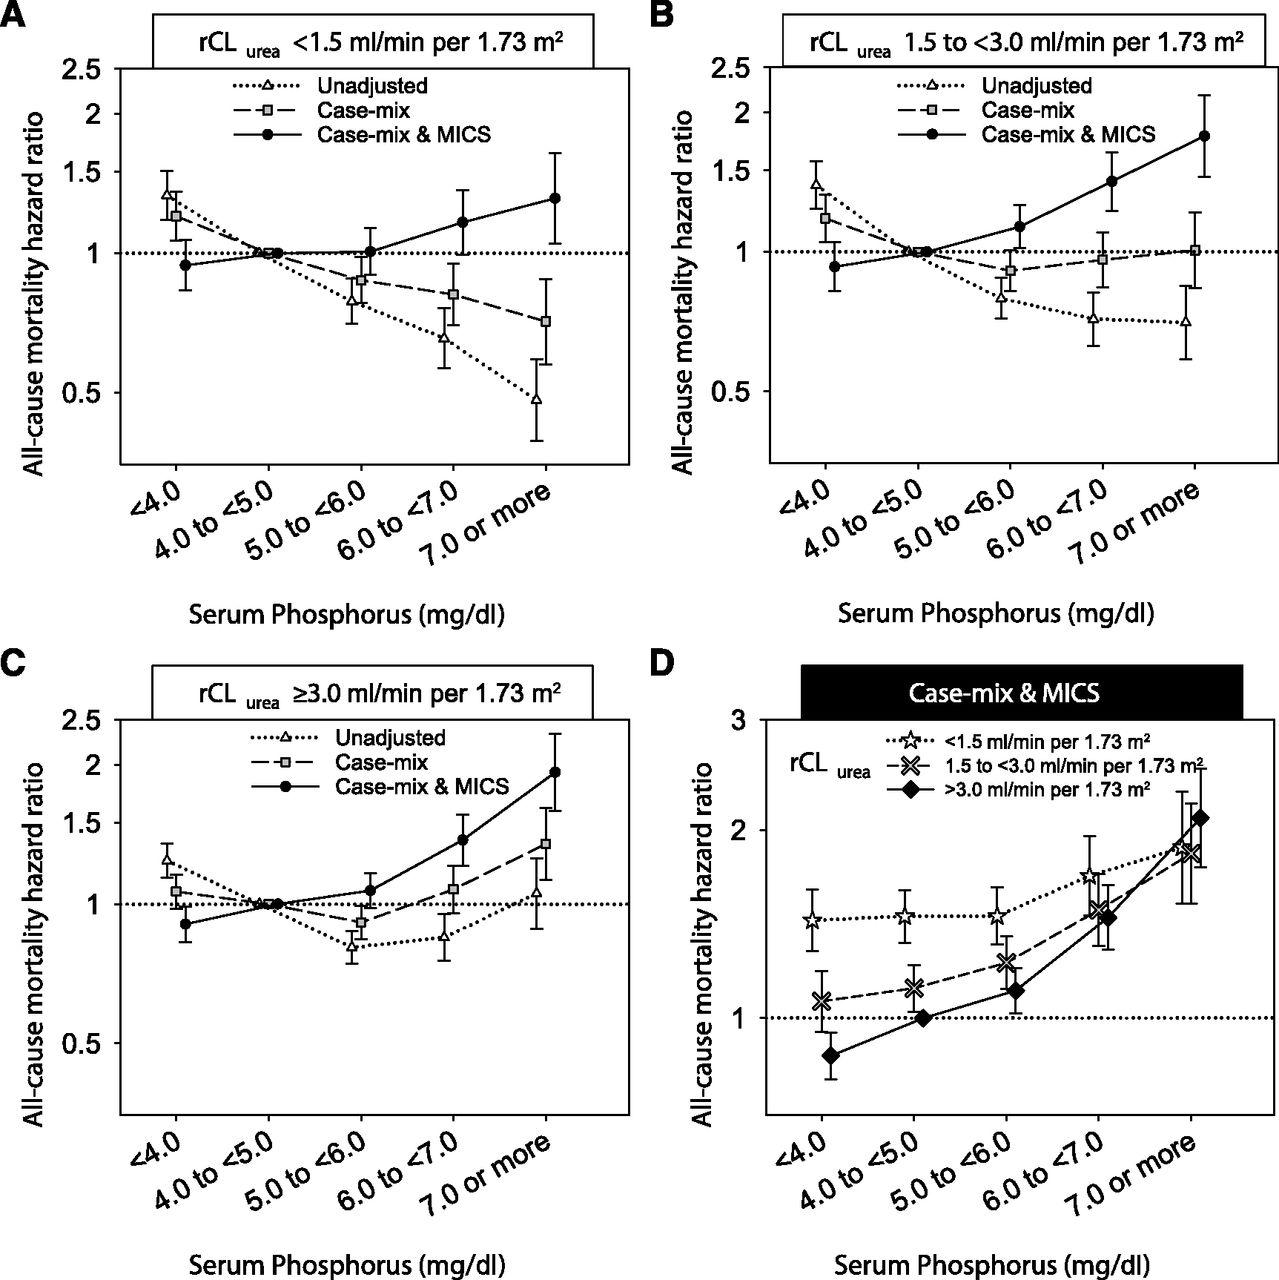 Association of Parameters of Mineral Bone Disorder with